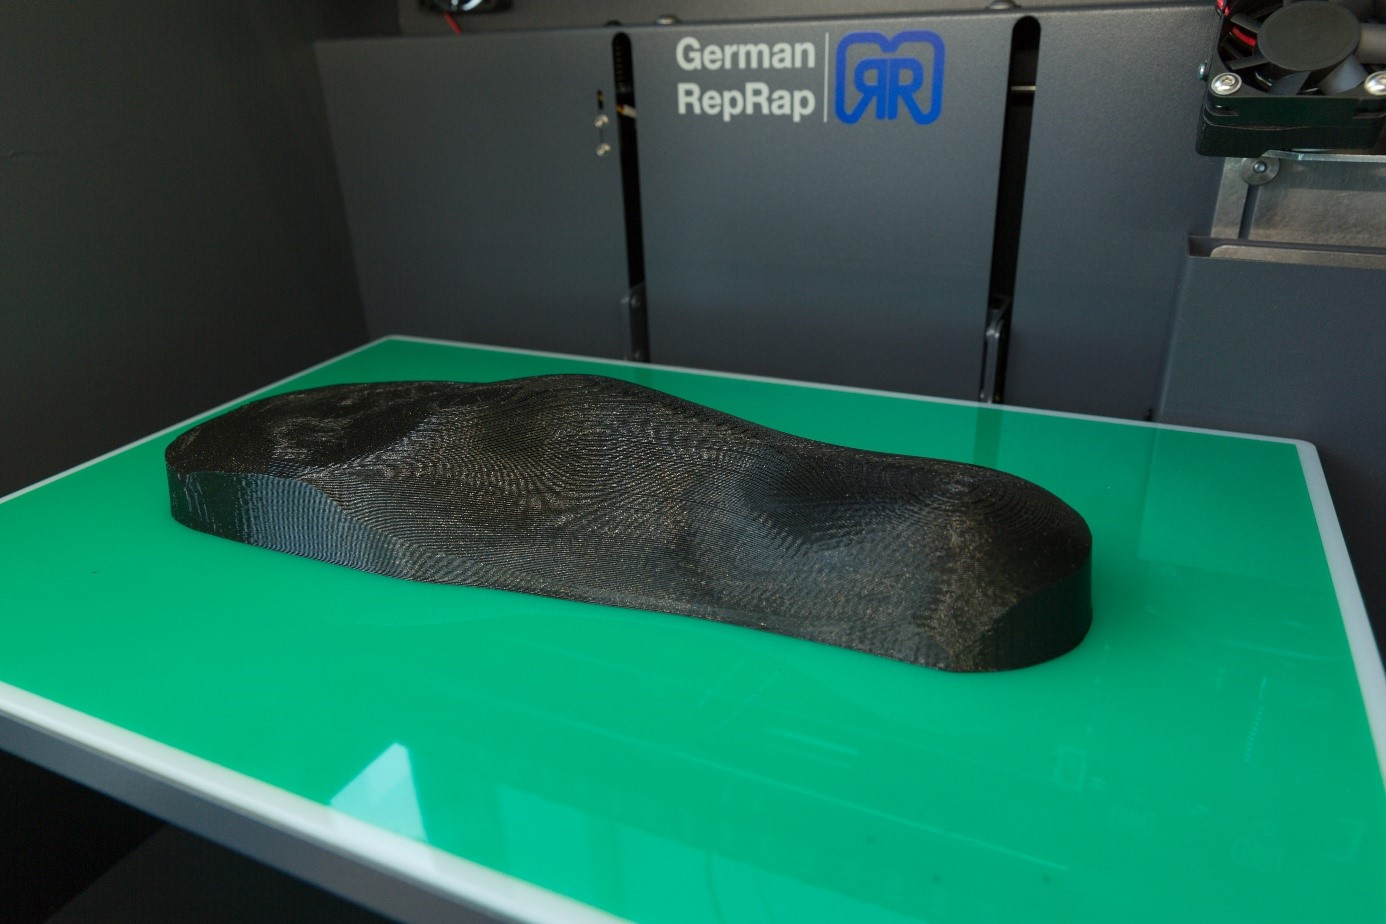 A positive mold of a foot. Image via German RepRap.